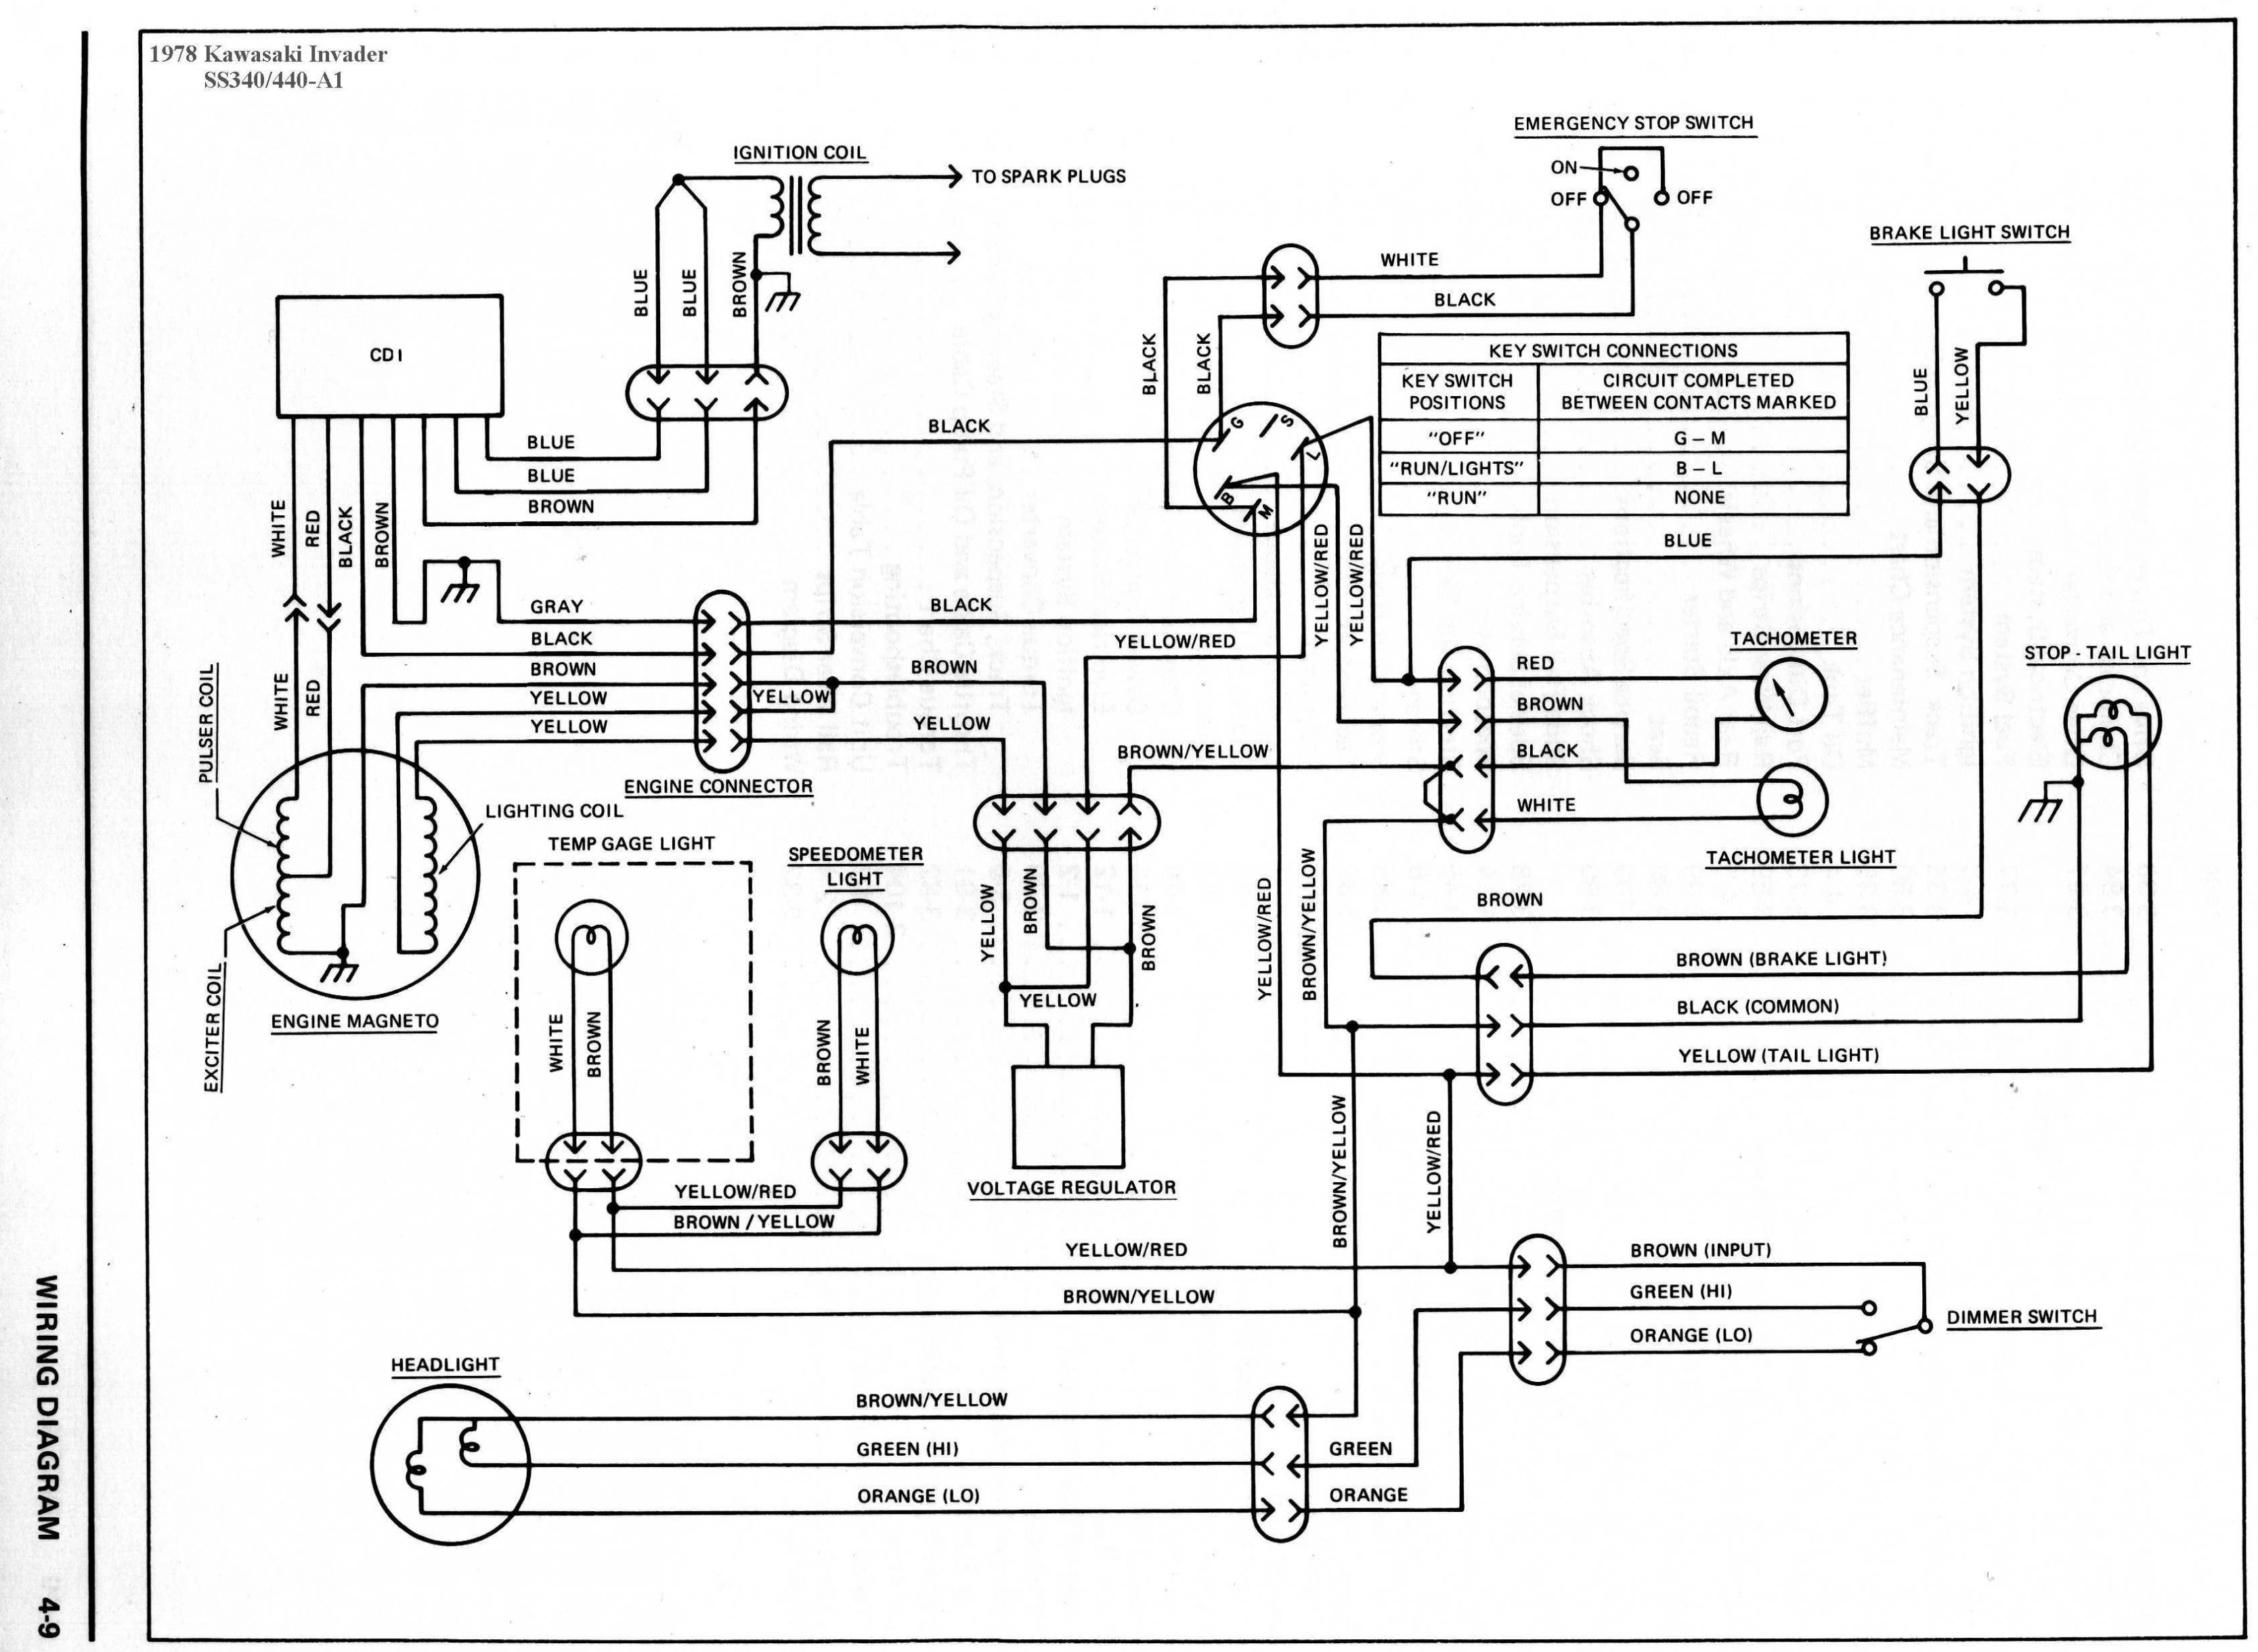 22 Clever Car Wiring Diagrams Explained Design